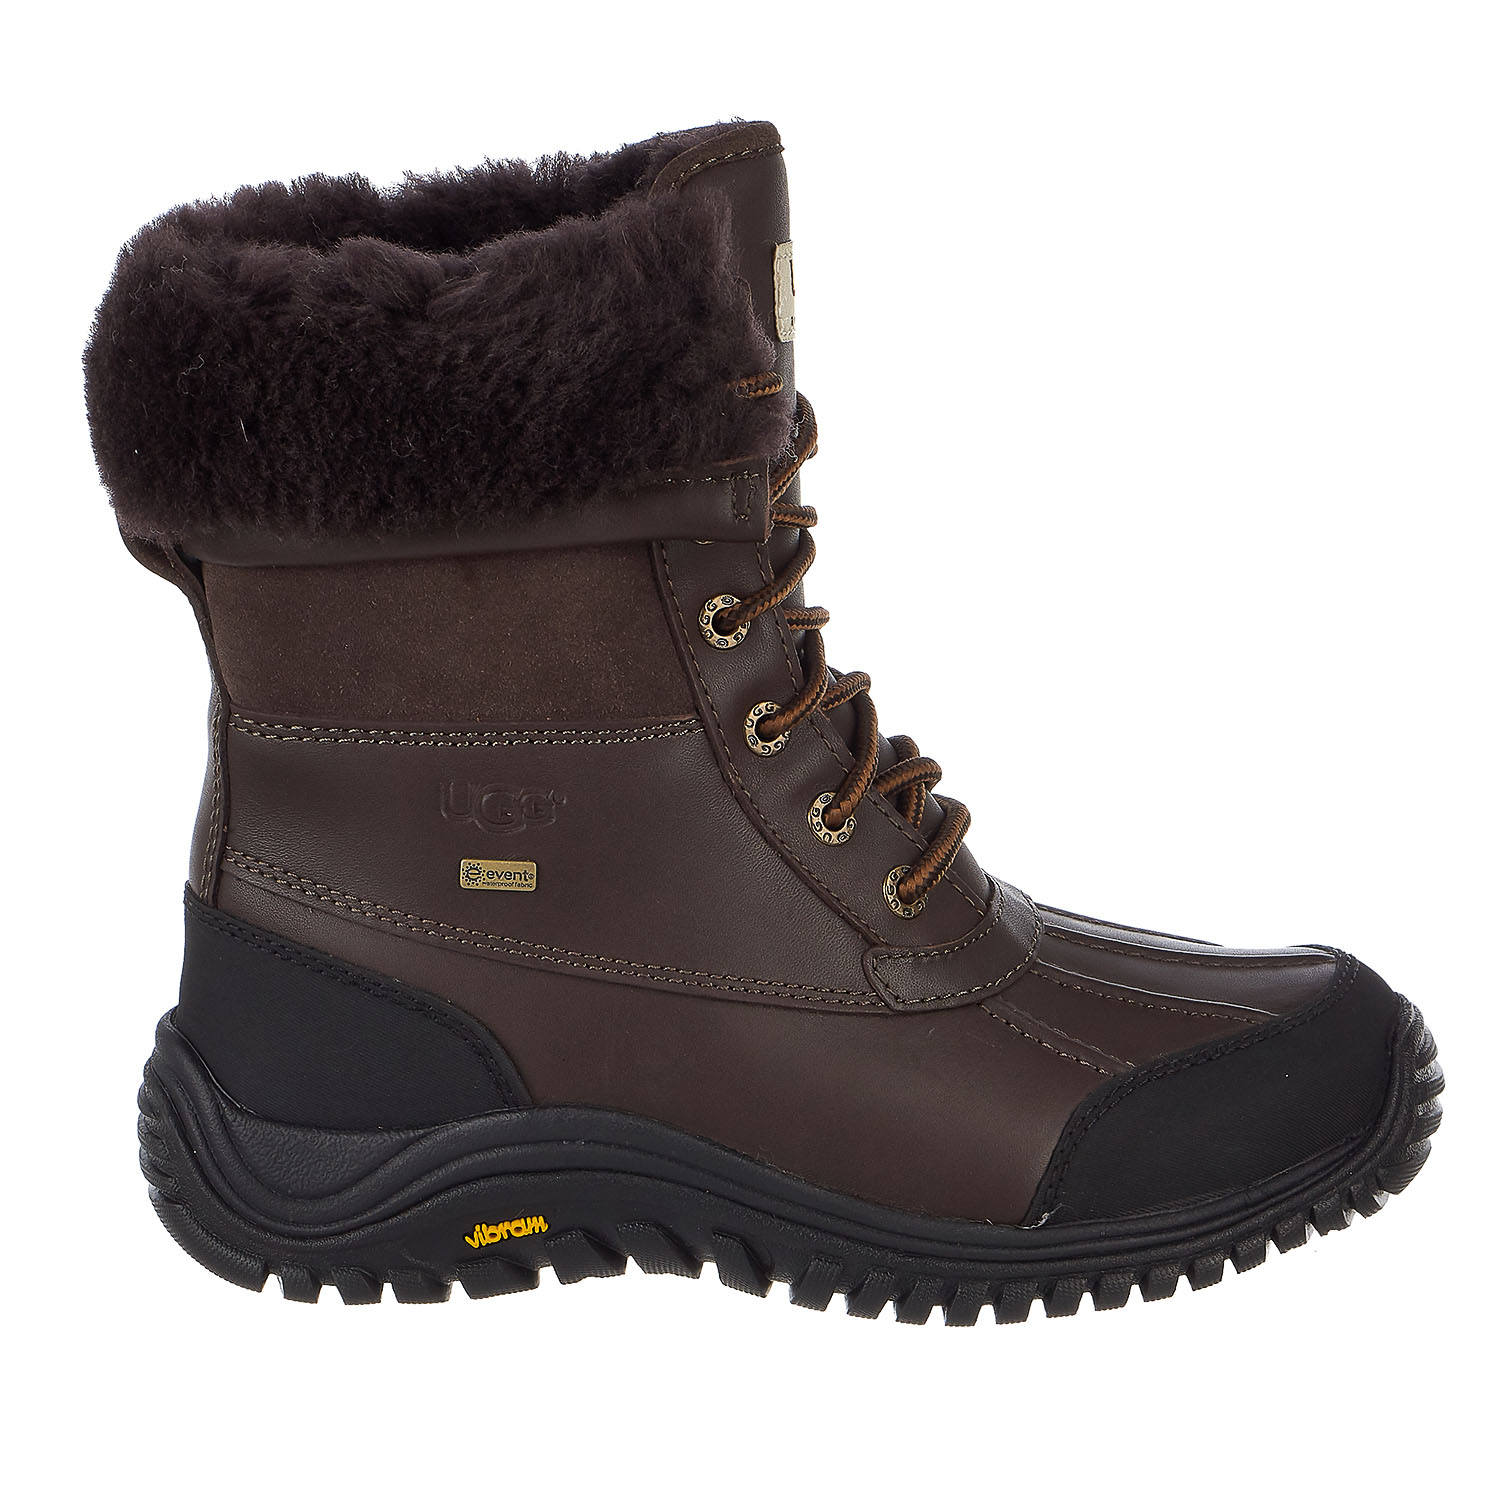 Ugg Adirondack Ii Waterproof Boot (Women)